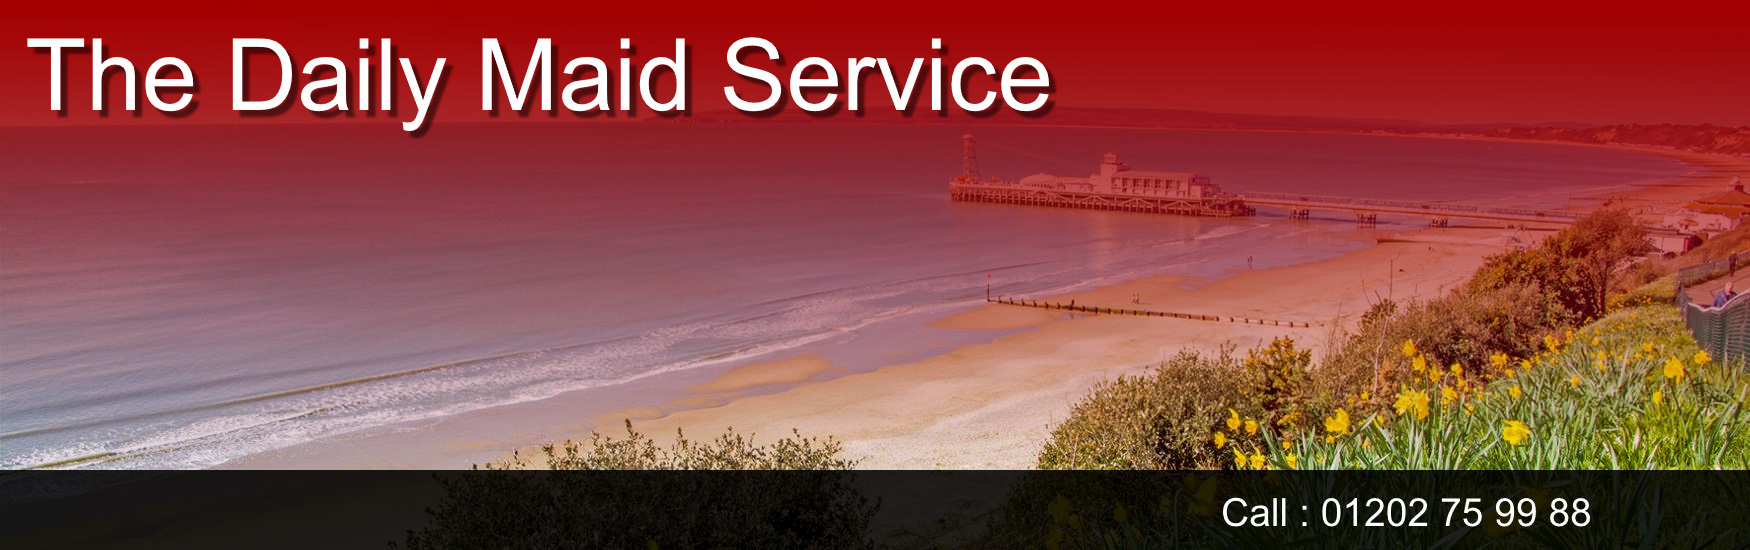 The Daily Maid Service - home cleaning services, holiday home cleaning services.